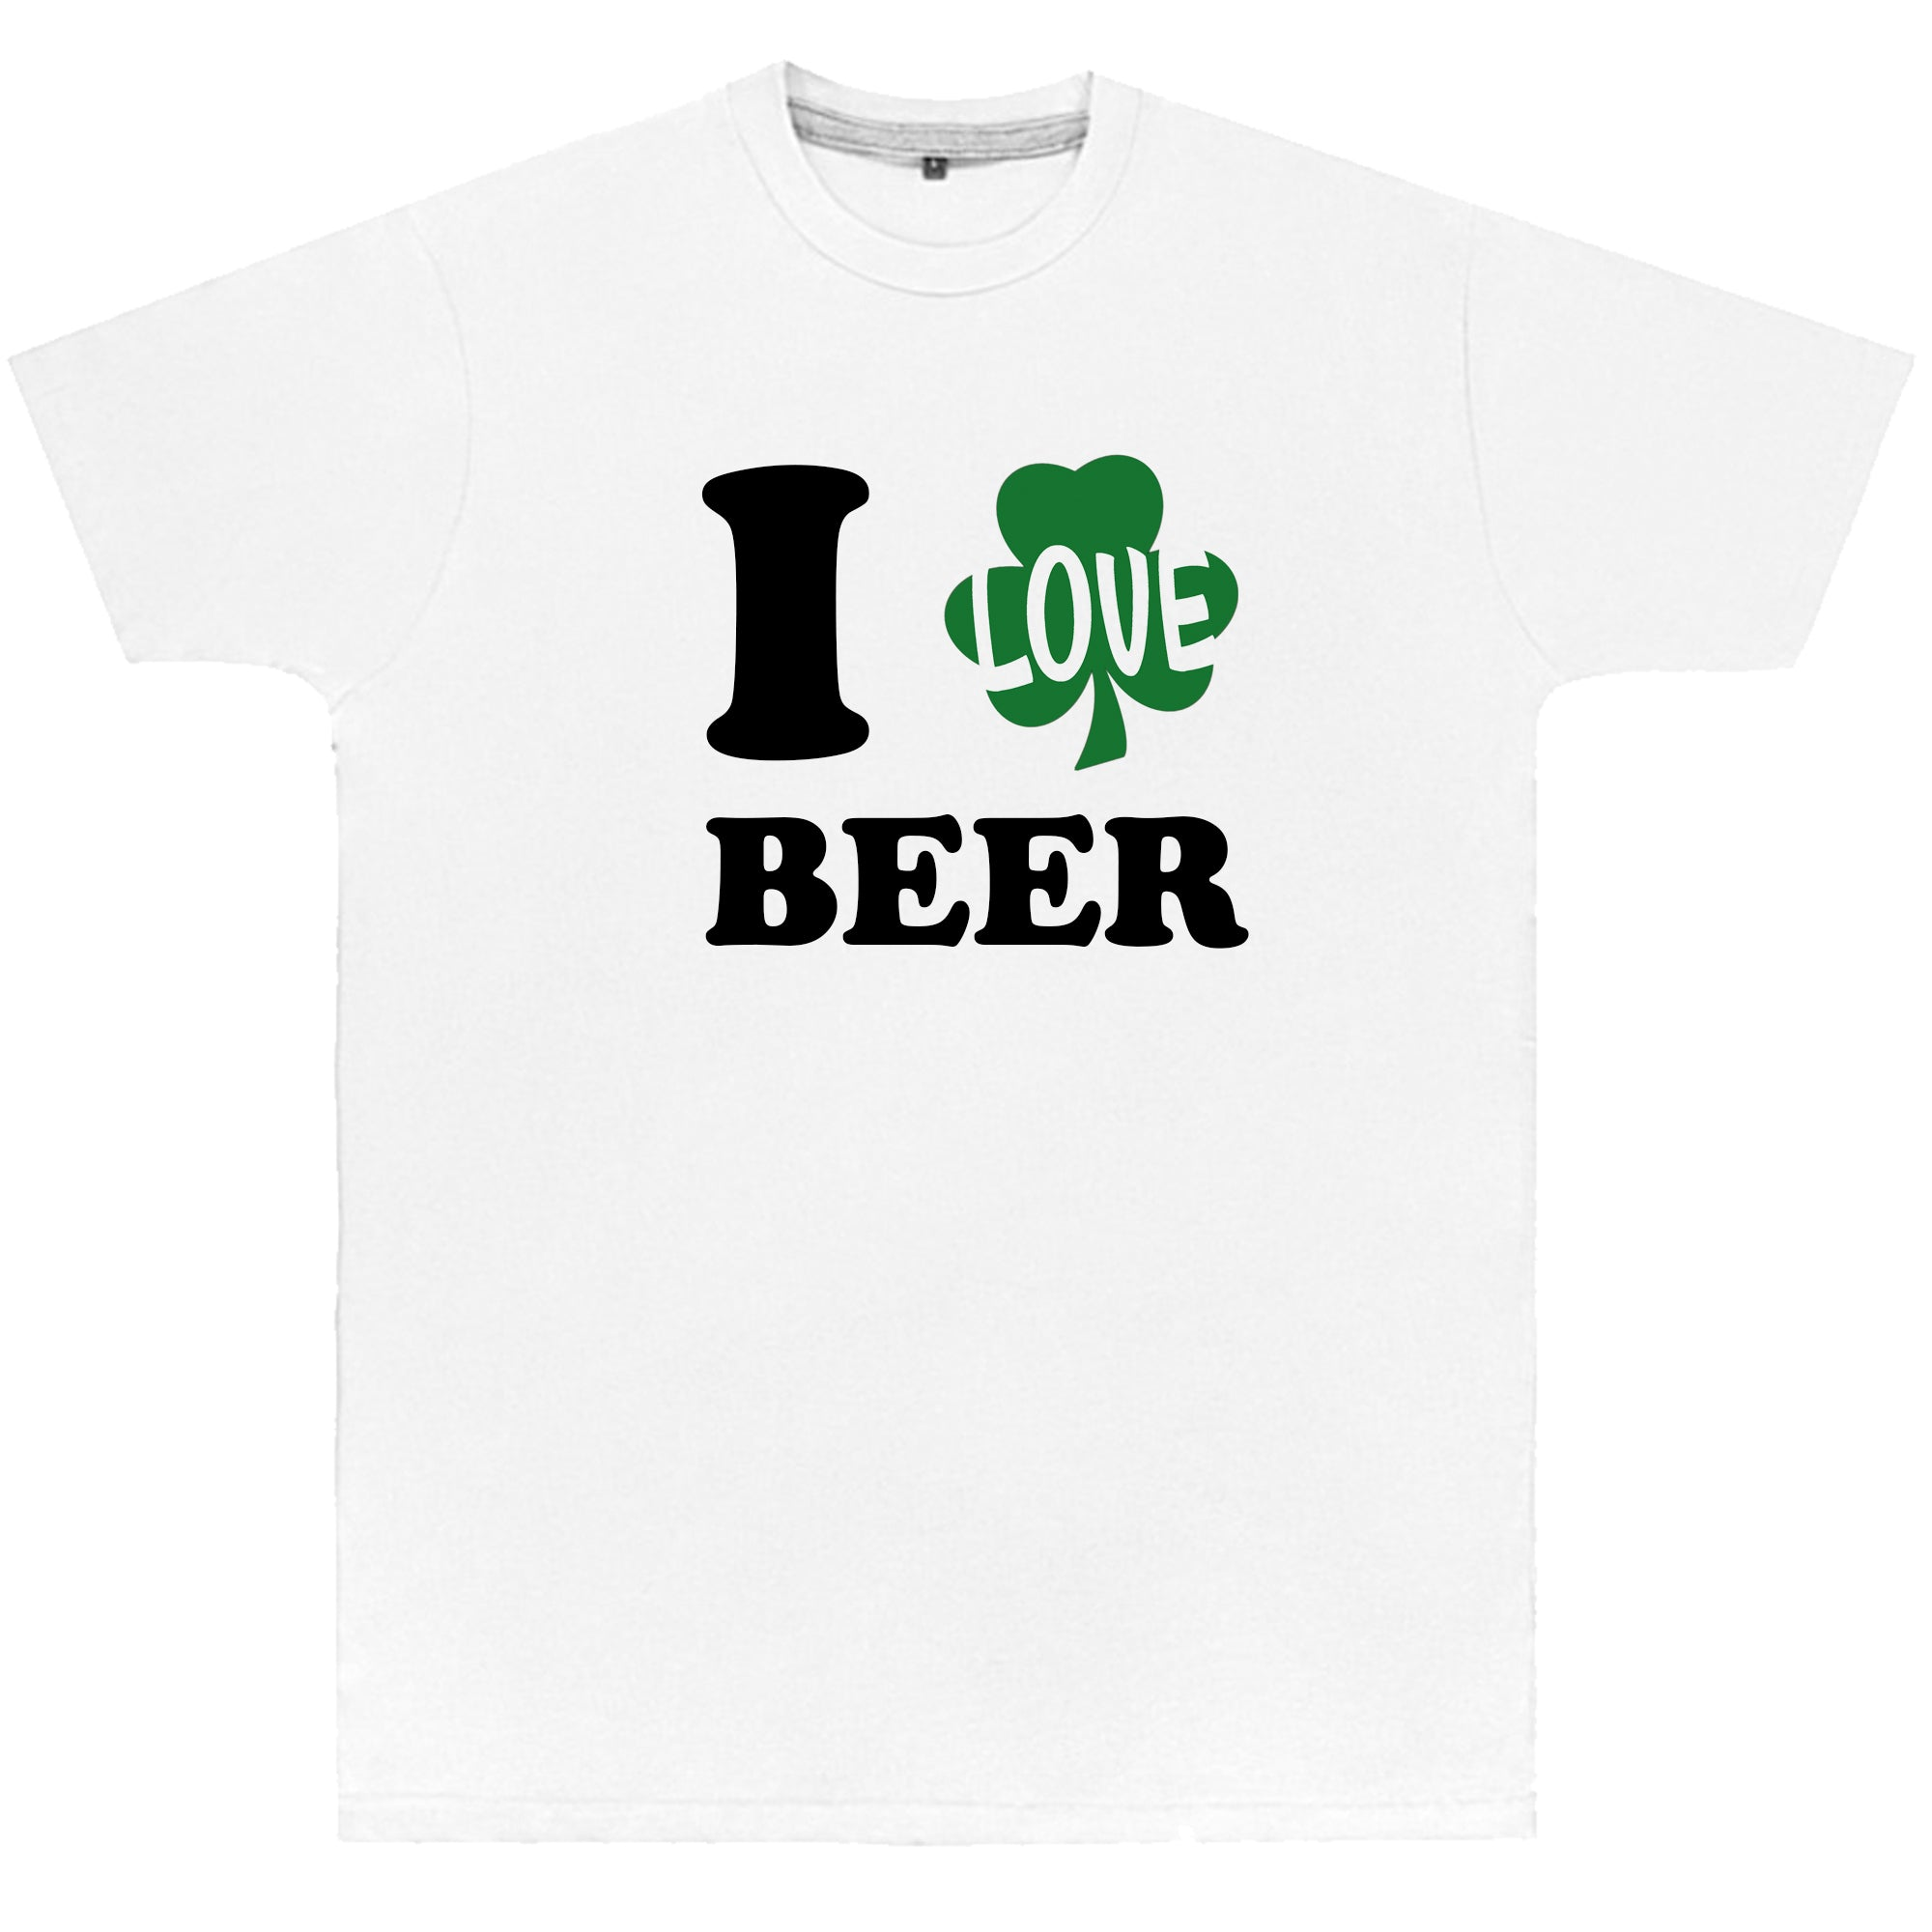 70cd2627d Product image 1 I Love Beer St Patrick's Day T Shirt Top Paddy's Day Gift Funny  Novelty Present Drink